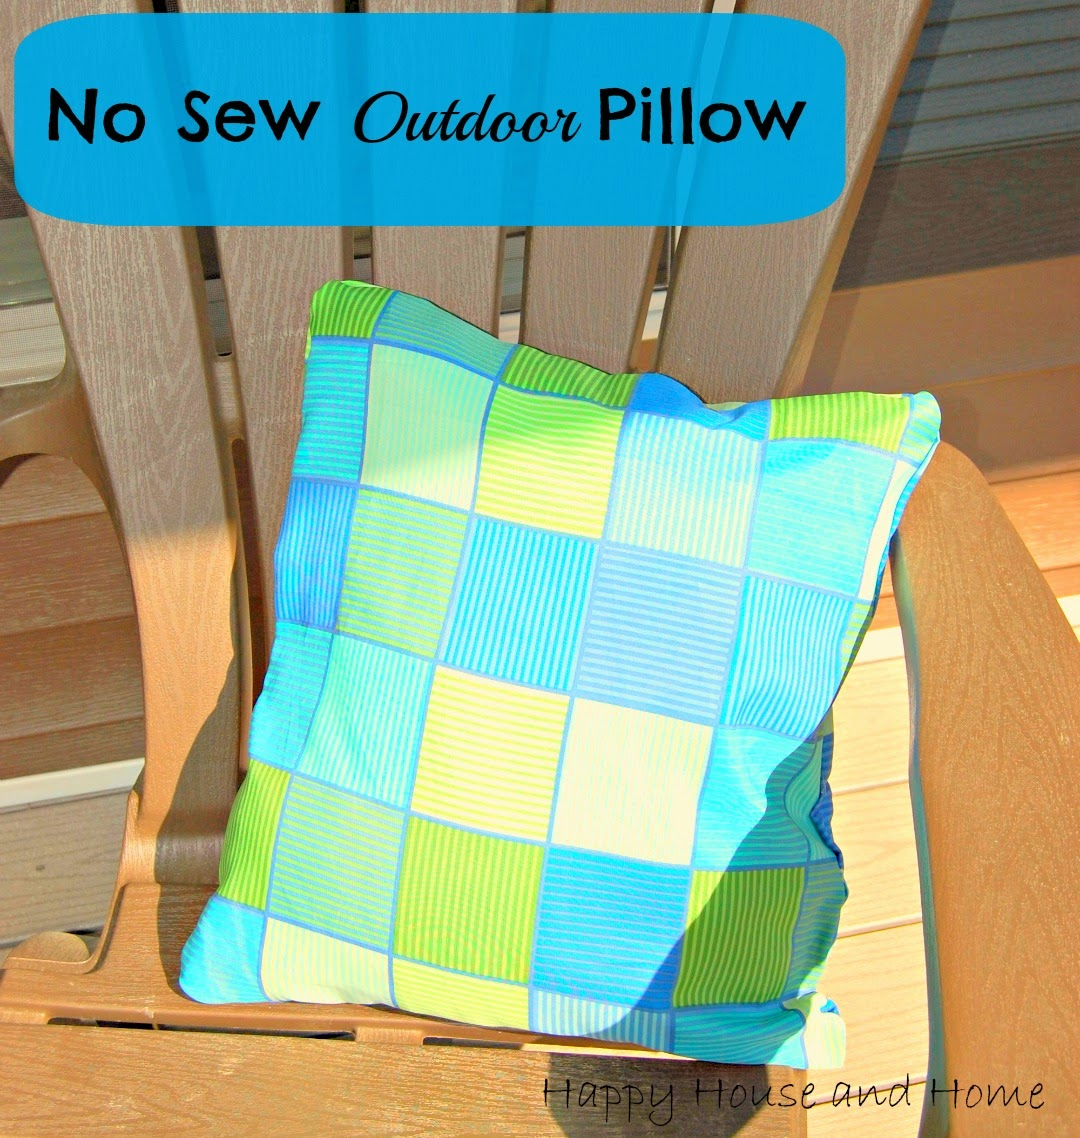 no-sew projects, no-sew pillow, no-sew outdoor pillow, diy pillows, outdoor decor